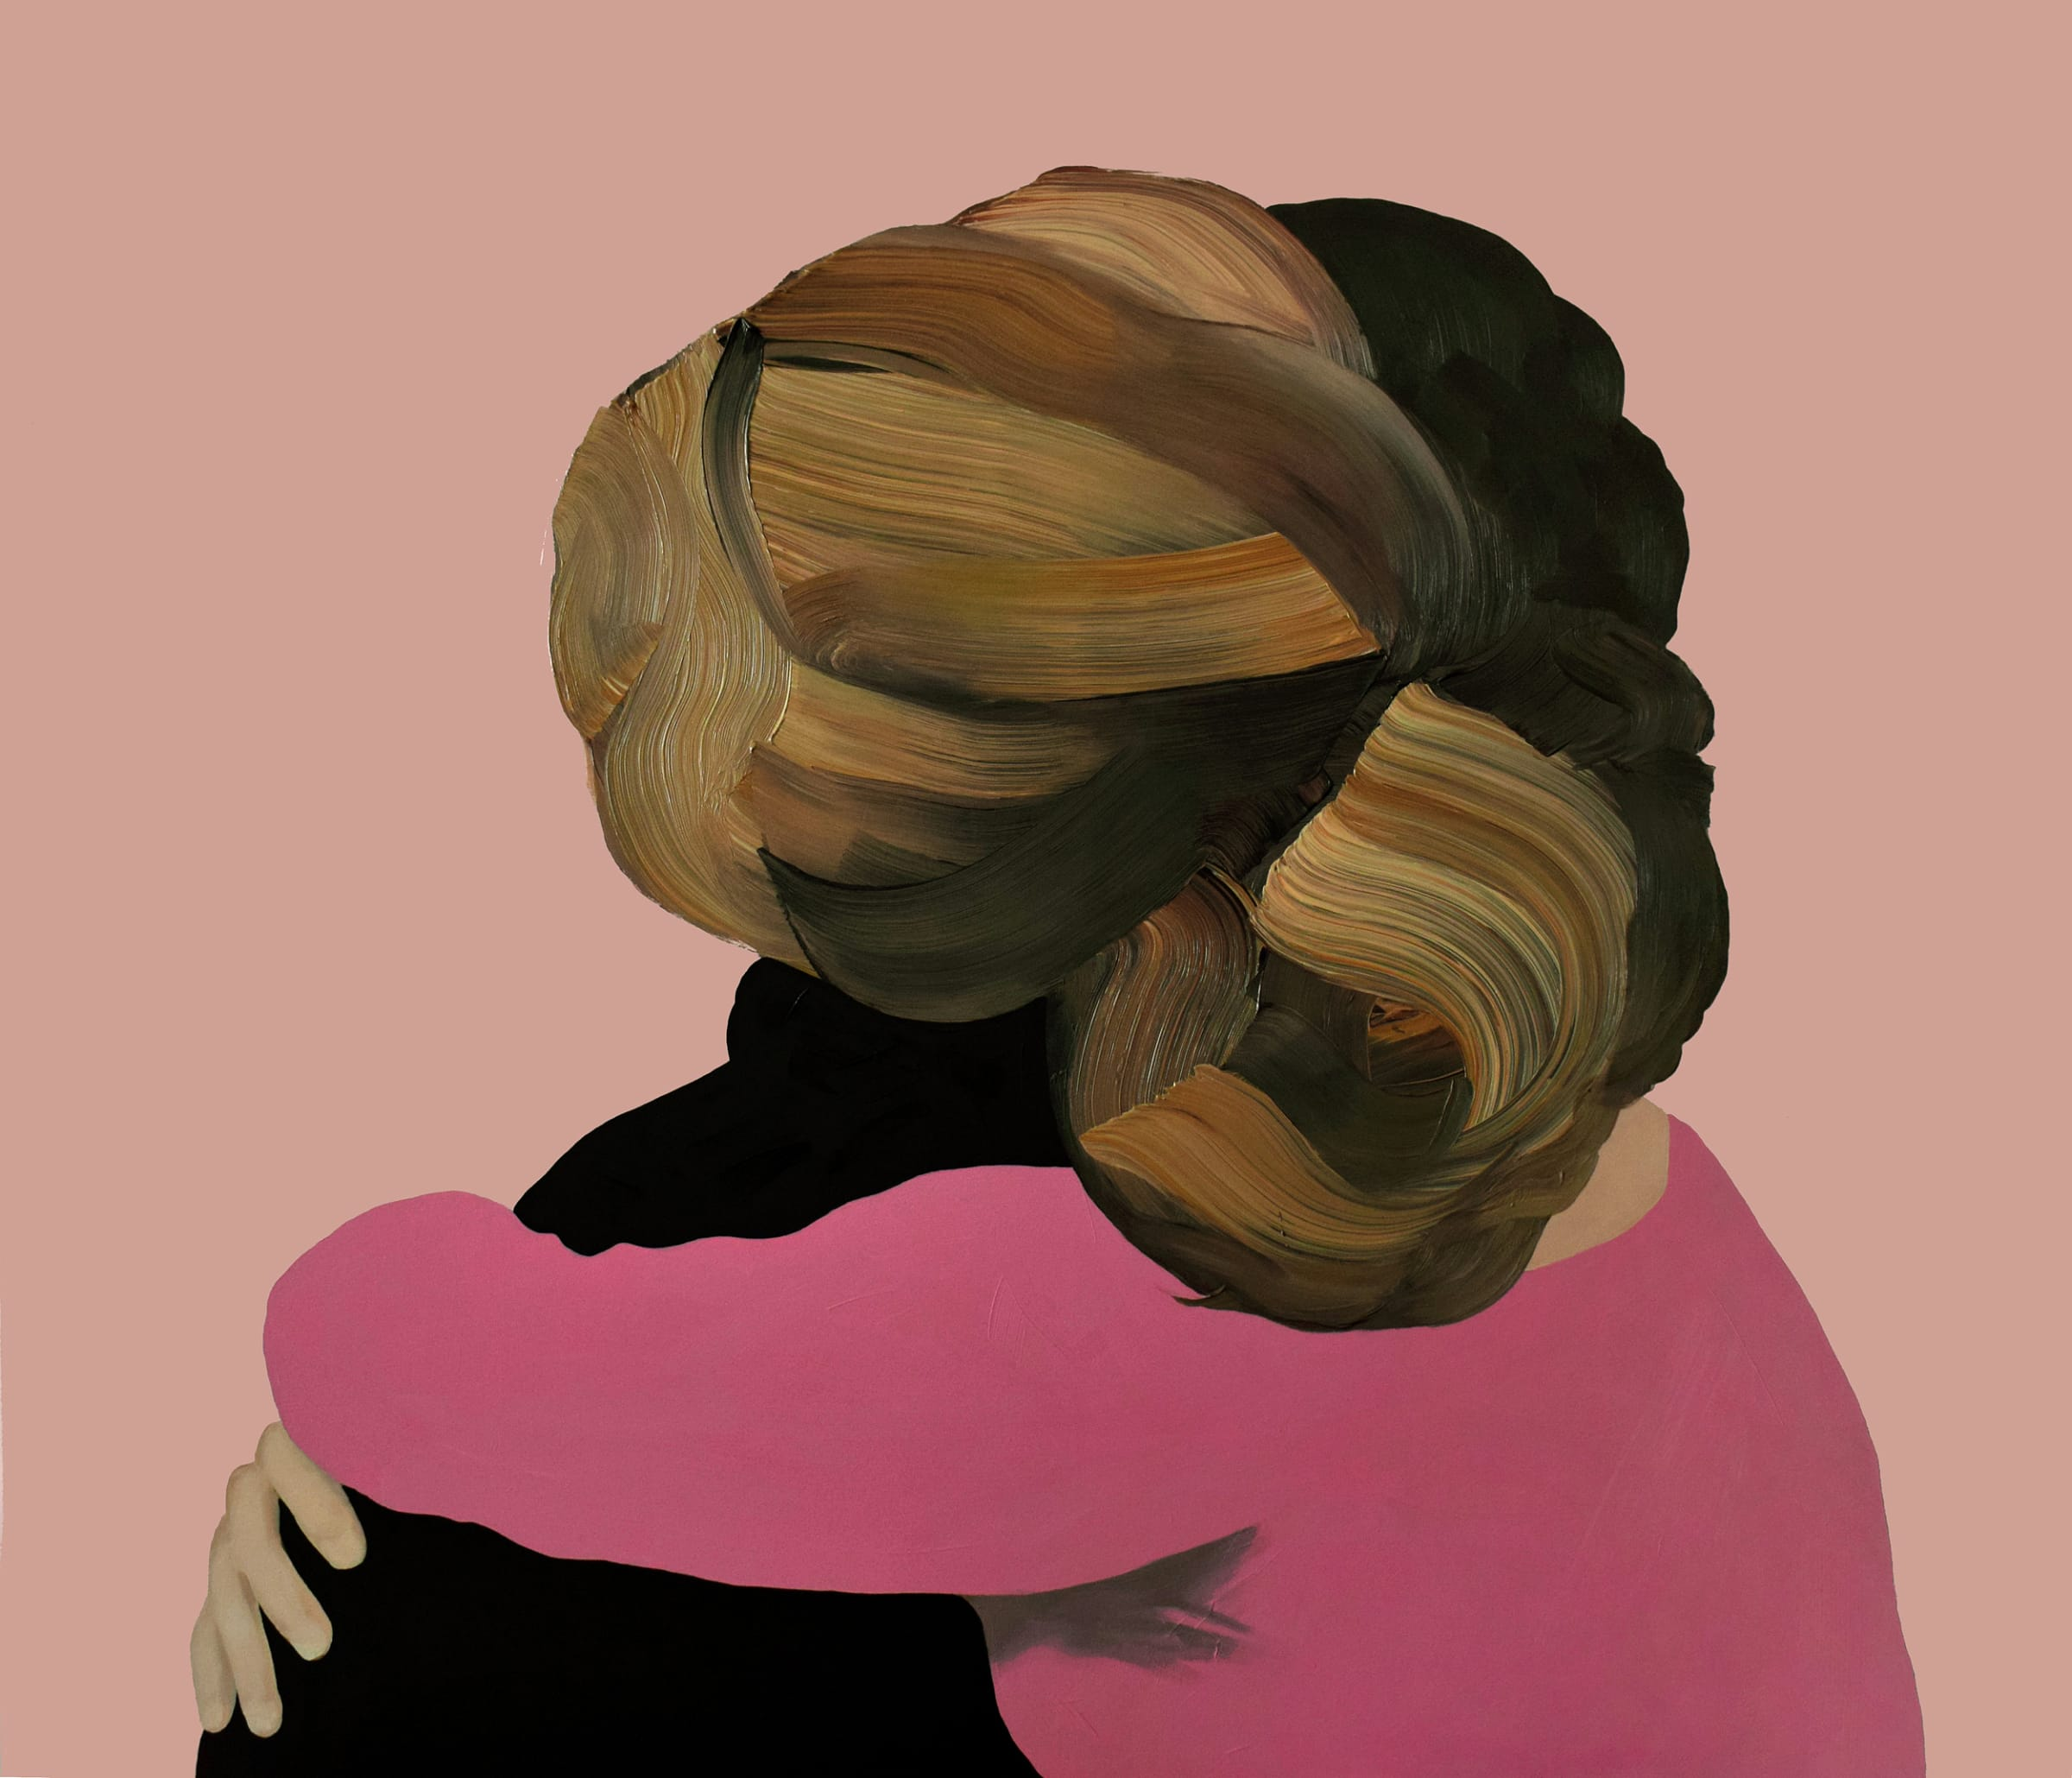 "<span class=""link fancybox-details-link""><a href=""/artists/54-jarek-puczel/works/334-jarek-puczel-entangled-ii/"">View Detail Page</a></span><div class=""artist""><strong>Jarek Puczel</strong></div> <div class=""title""><em>Entangled II</em></div> <div class=""medium"">Oil on Canvas</div> <div class=""dimensions"">47 x 55 inches SOLD</div>"